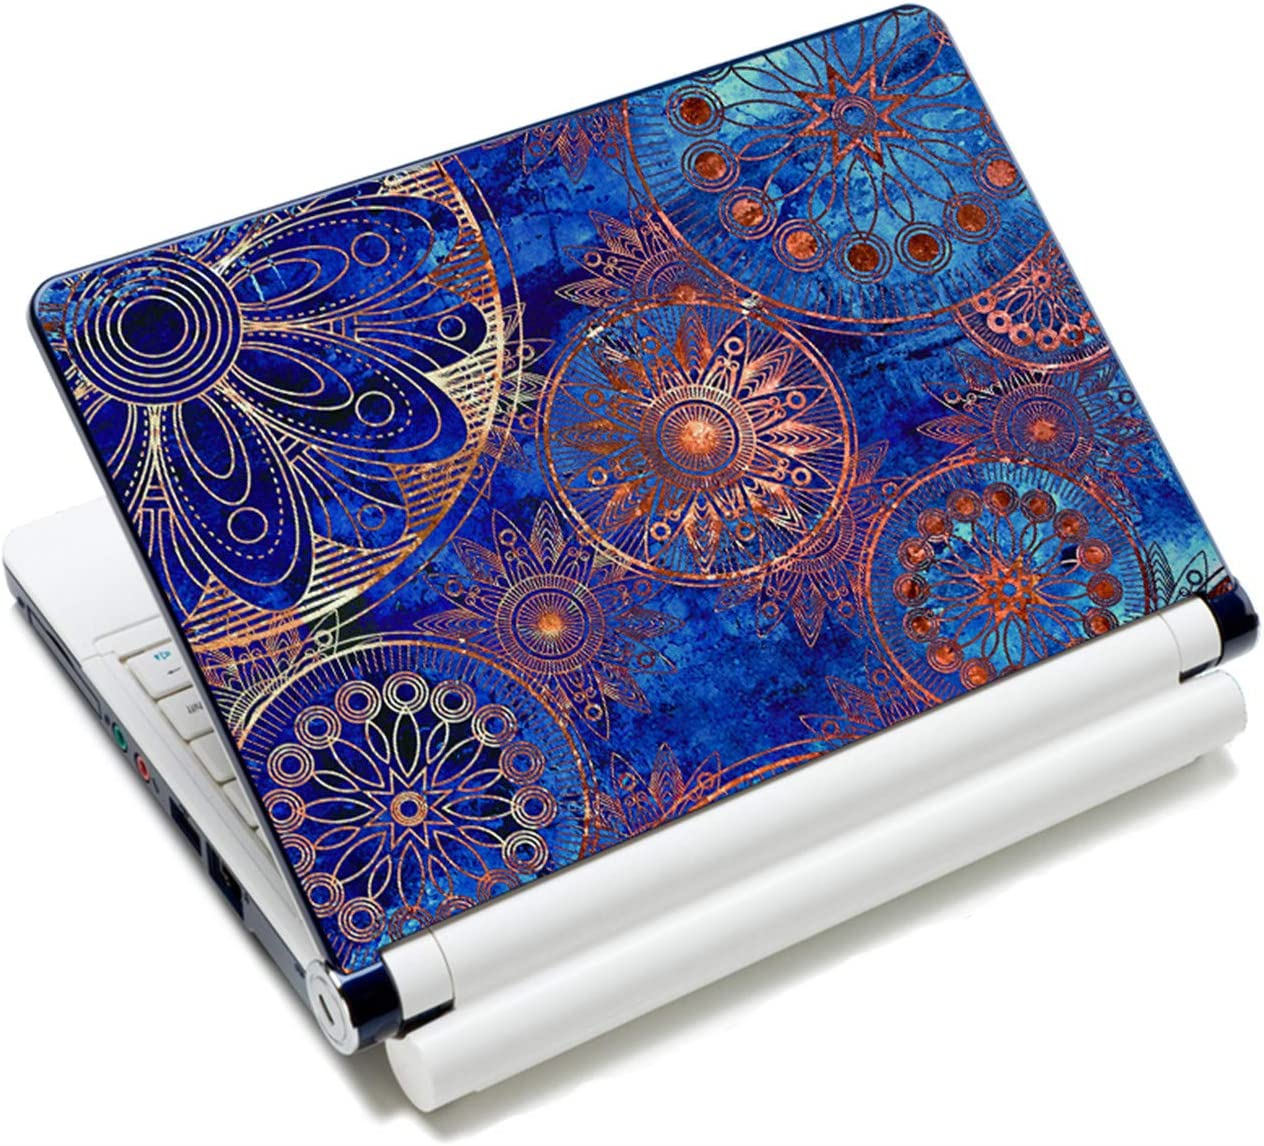 """Laptop Skin Vinyl Sticker Decal, 12"""" 13"""" 13.3"""" 14"""" 15"""" 15.4"""" 15.6 inch Laptop Skin Sticker Cover Art Decal Protector Fits HP Dell Lenovo Compaq Apple Asus Acer (Blue Flower)"""